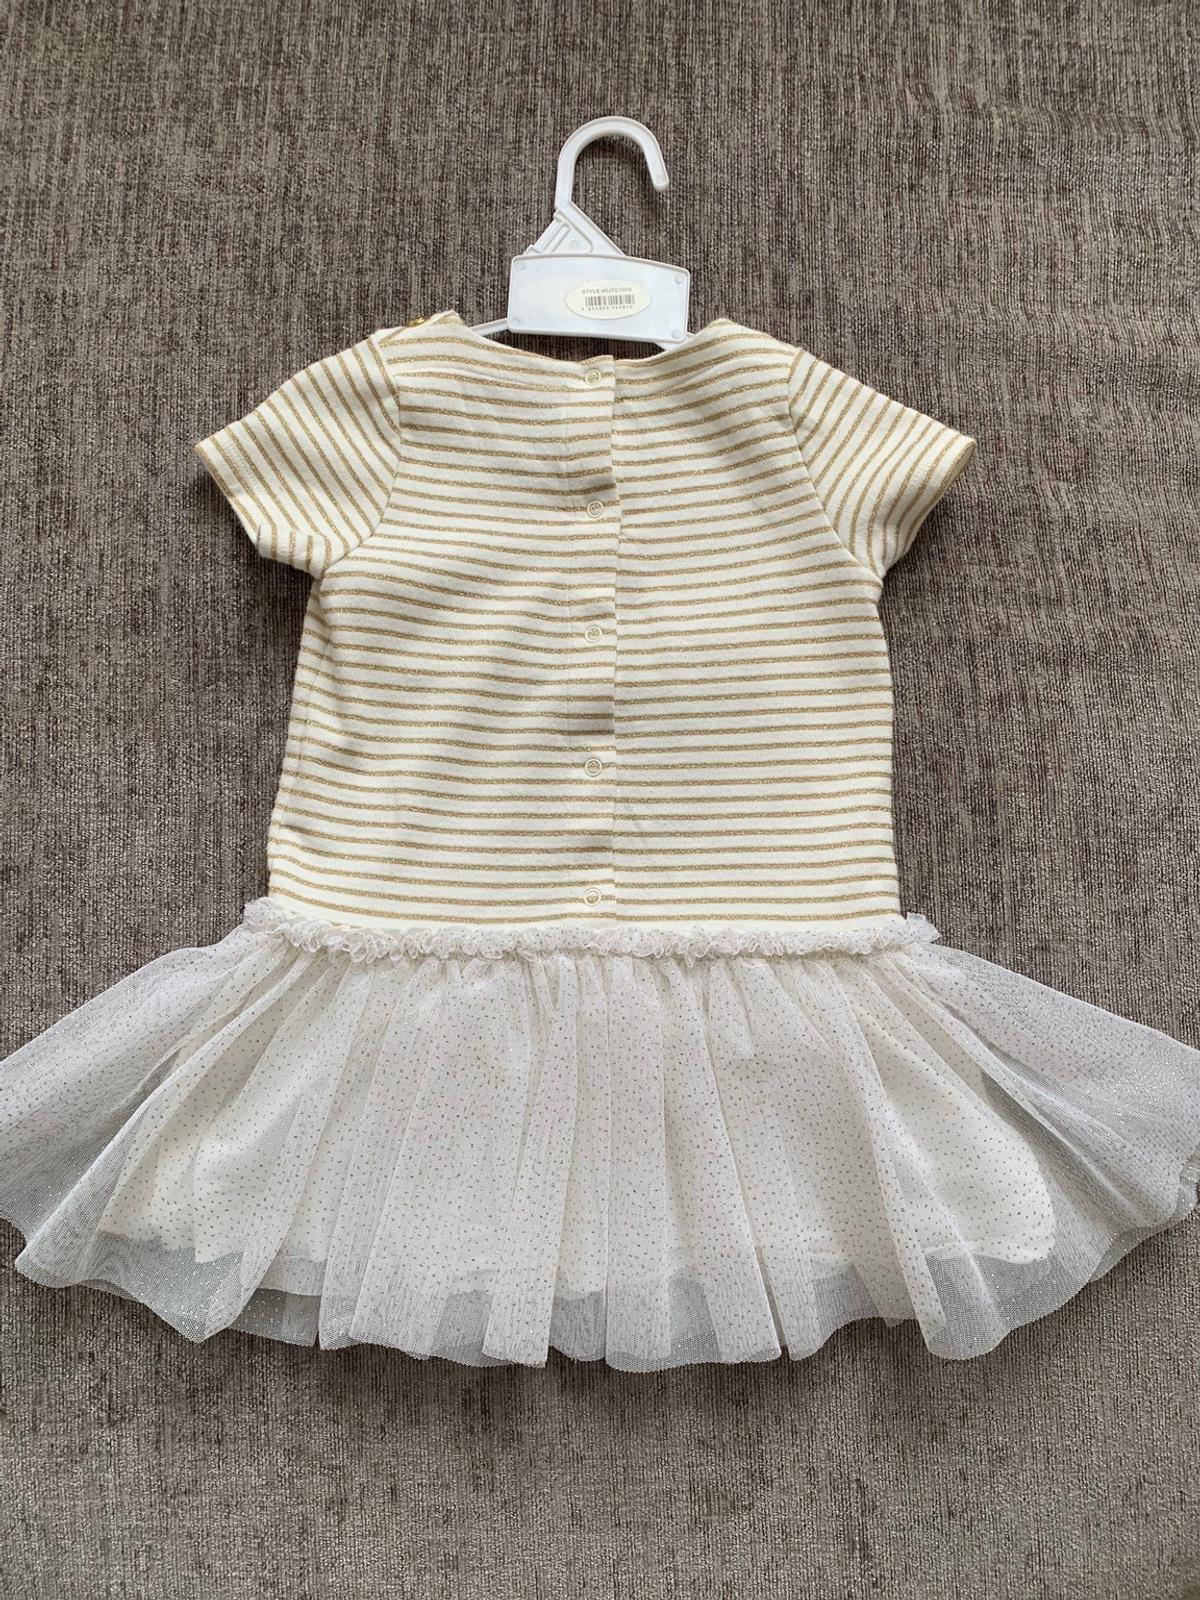 Beautiful gold stipe top and gold glitter skirt girls dress in immaculate condition form luxury brand Petit Bateau From pet free smoke free home Size: 18M or 81cm